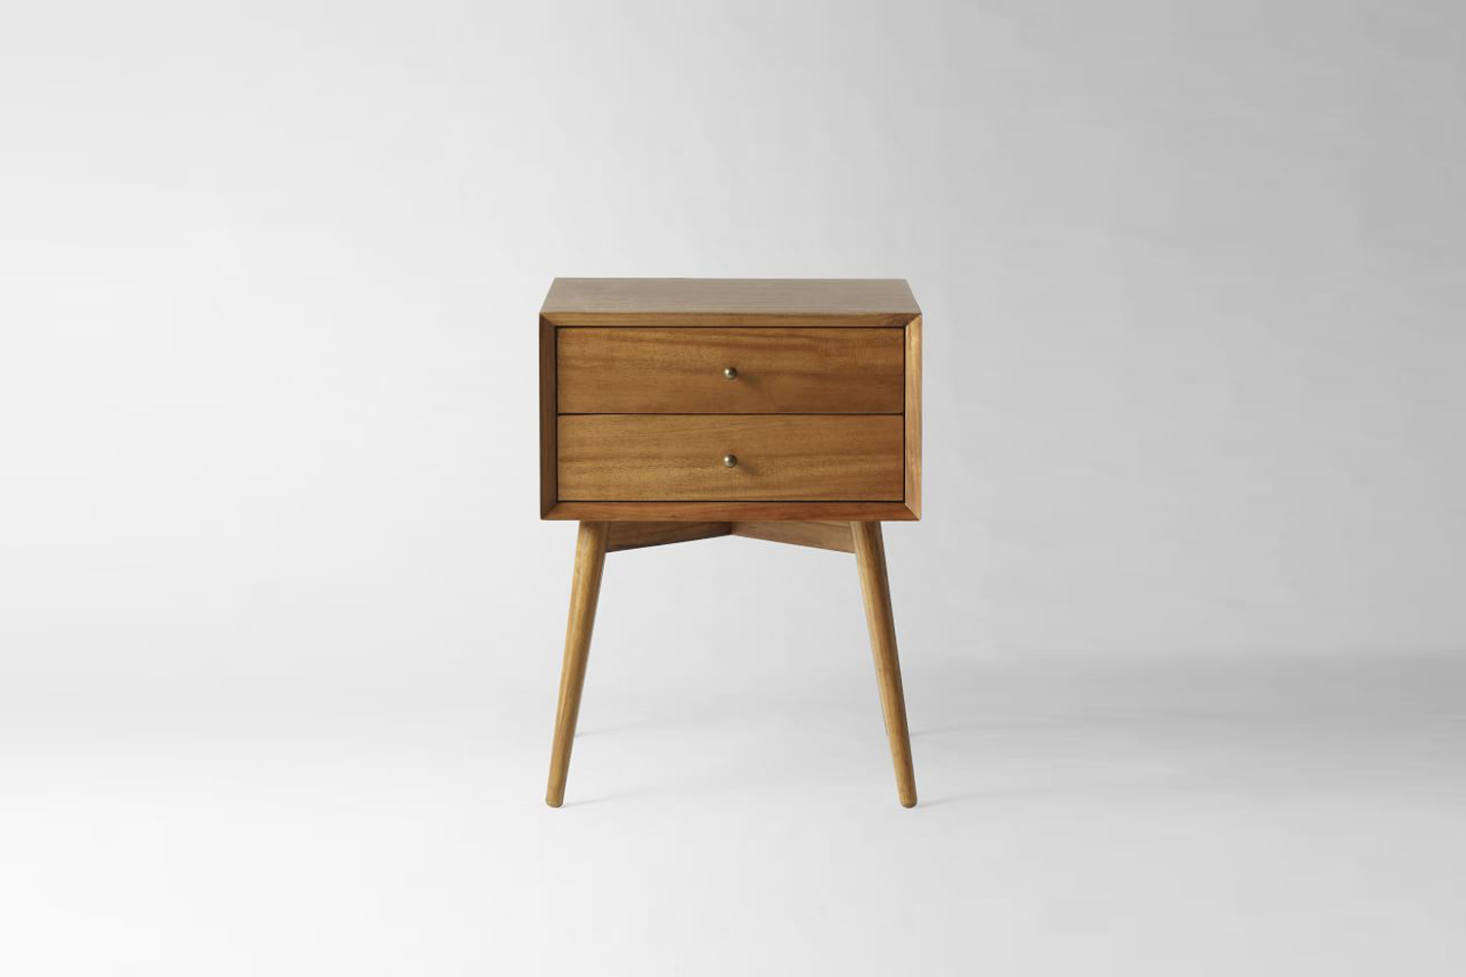 A similar Mid-Century Nightstand in an acorn-colored finish is $9 at West Elm.